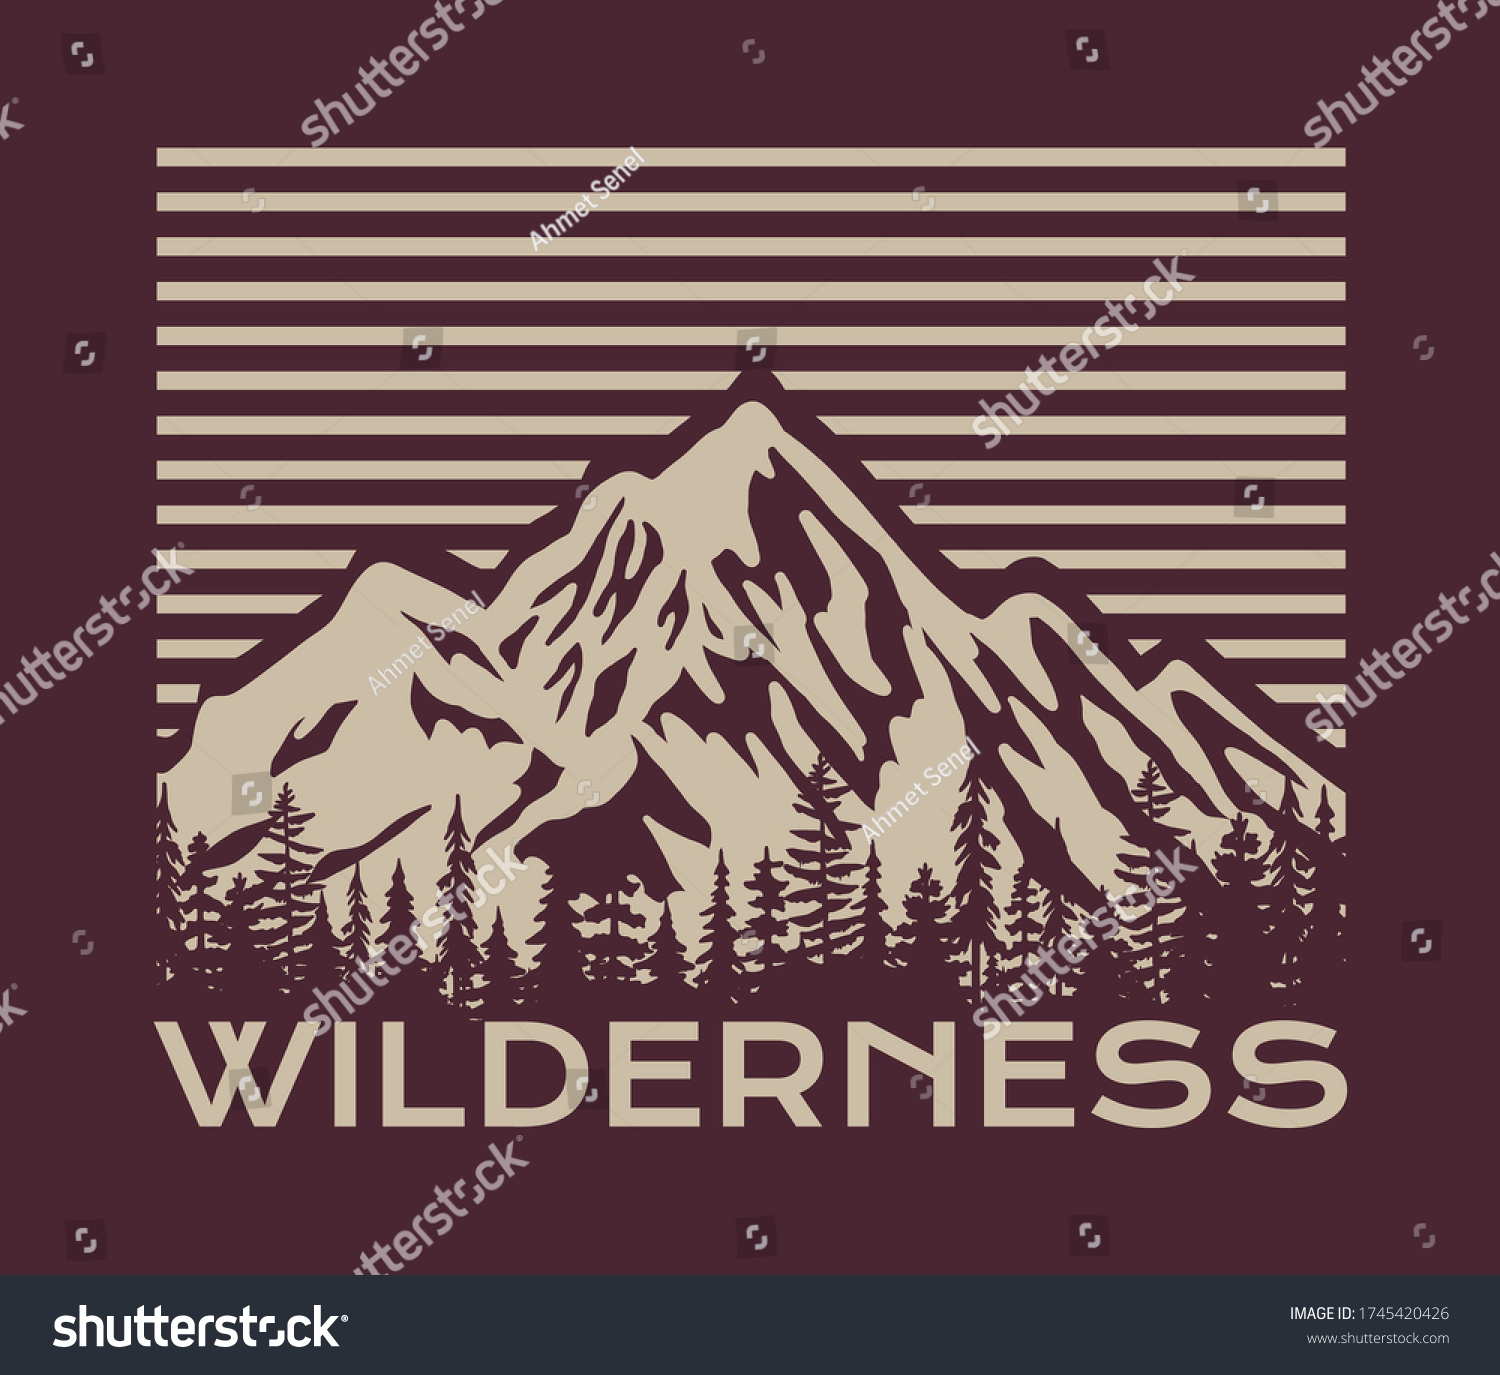 Vintage Outdoor Mountain Illustration with Wilderness Slogan Vector Artwork for T-shirt Print And Other Uses #1745420426